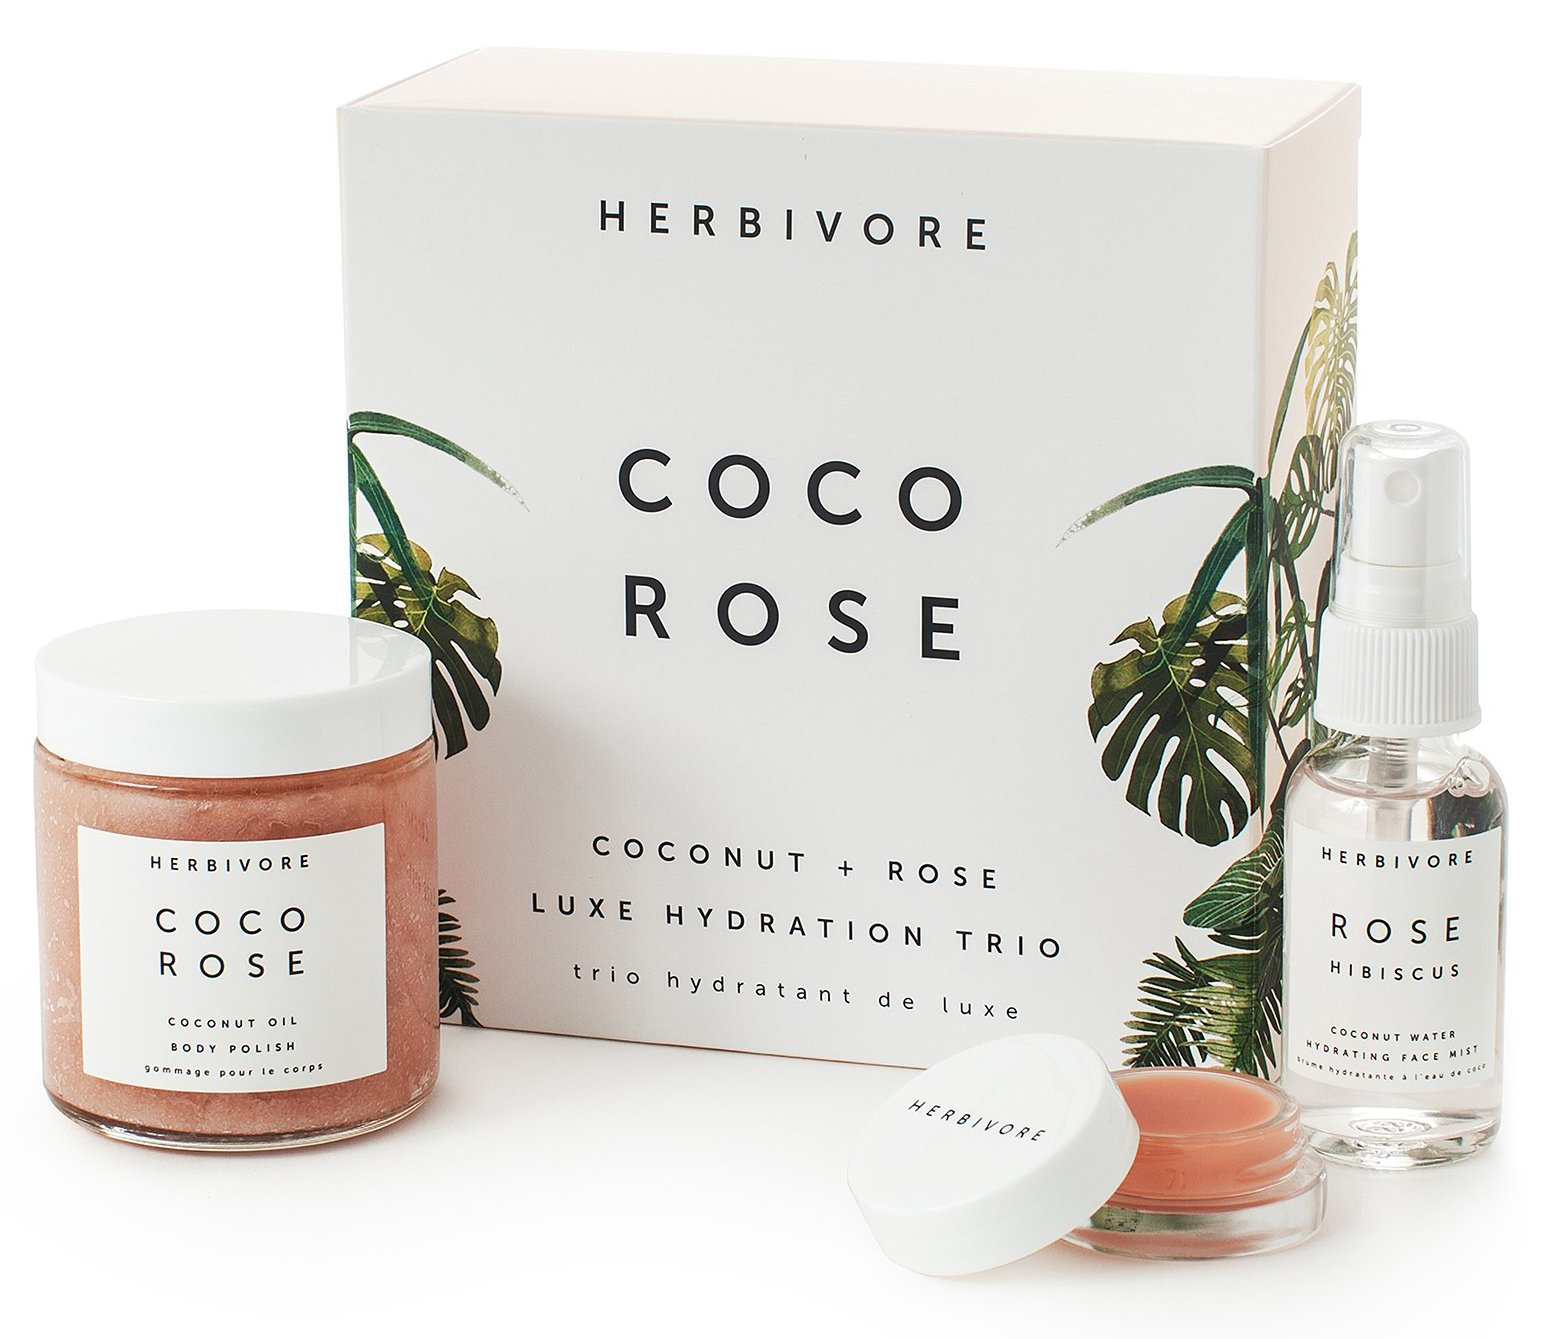 Herbivore Botanicals - Herbivore Botanicals - All Natural Coco Rose Luxe Hydration Trio